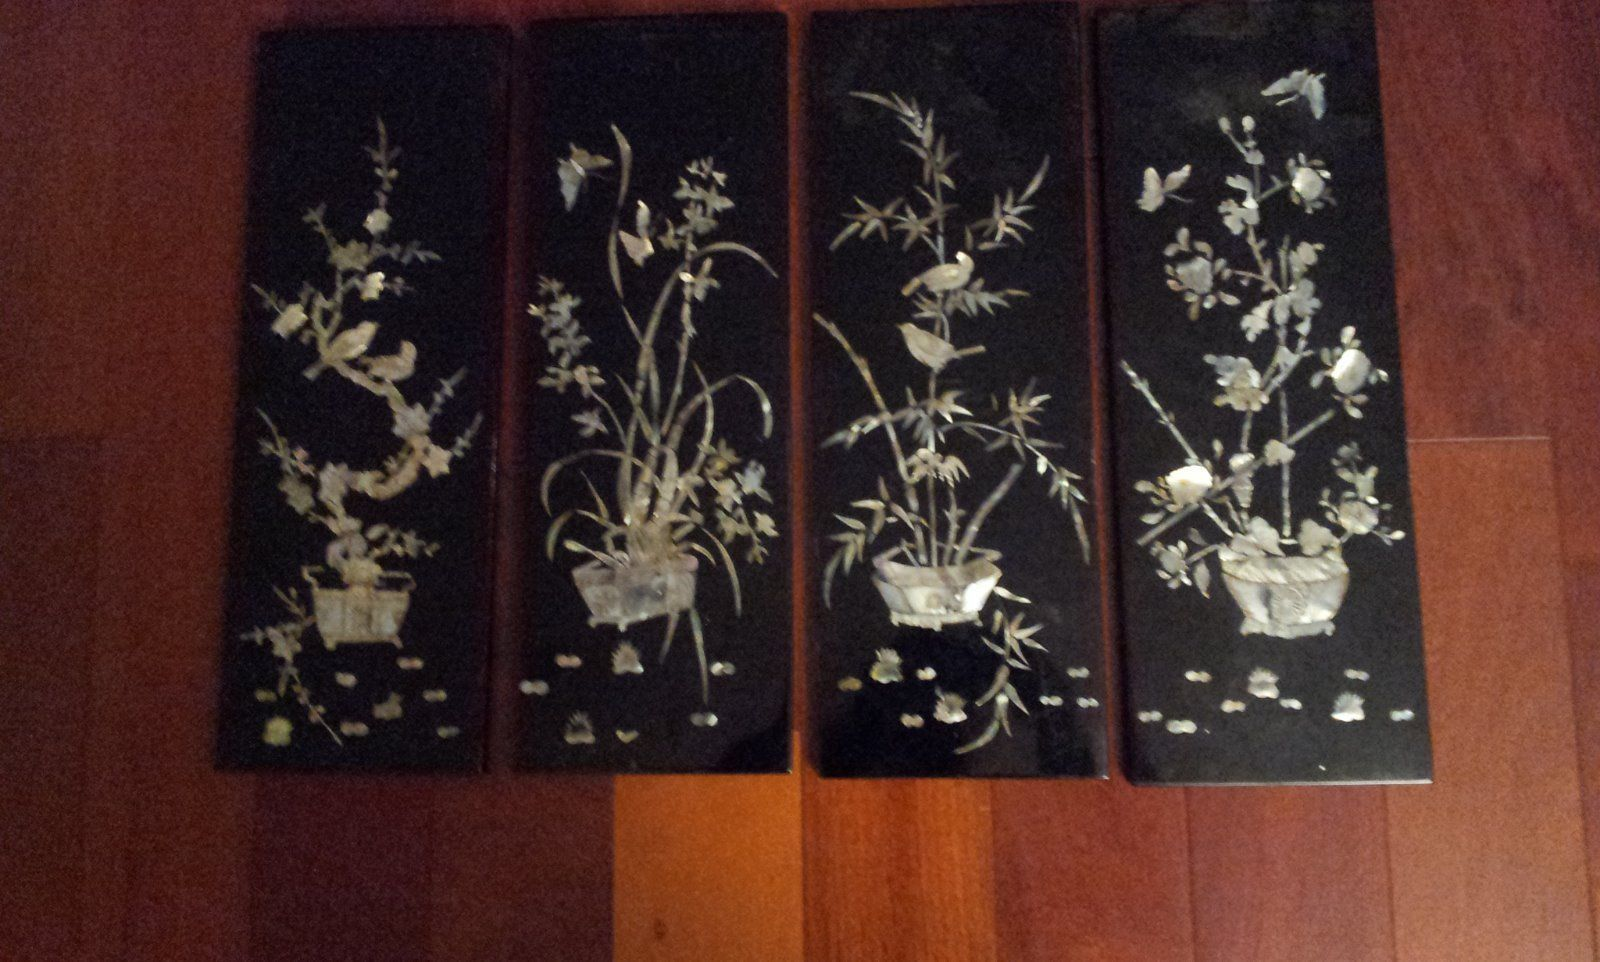 News Beautiful Vietnamese wall panel, wood black Lacquer    Beautiful Vietnamese wall panel, wood black Lacquer    Price : 35.00  Ends on : 2016-02-07 06:00:08  View on eBay     ... http://showbizlikes.com/beautiful-vietnamese-wall-panel-wood-black-lacquer/